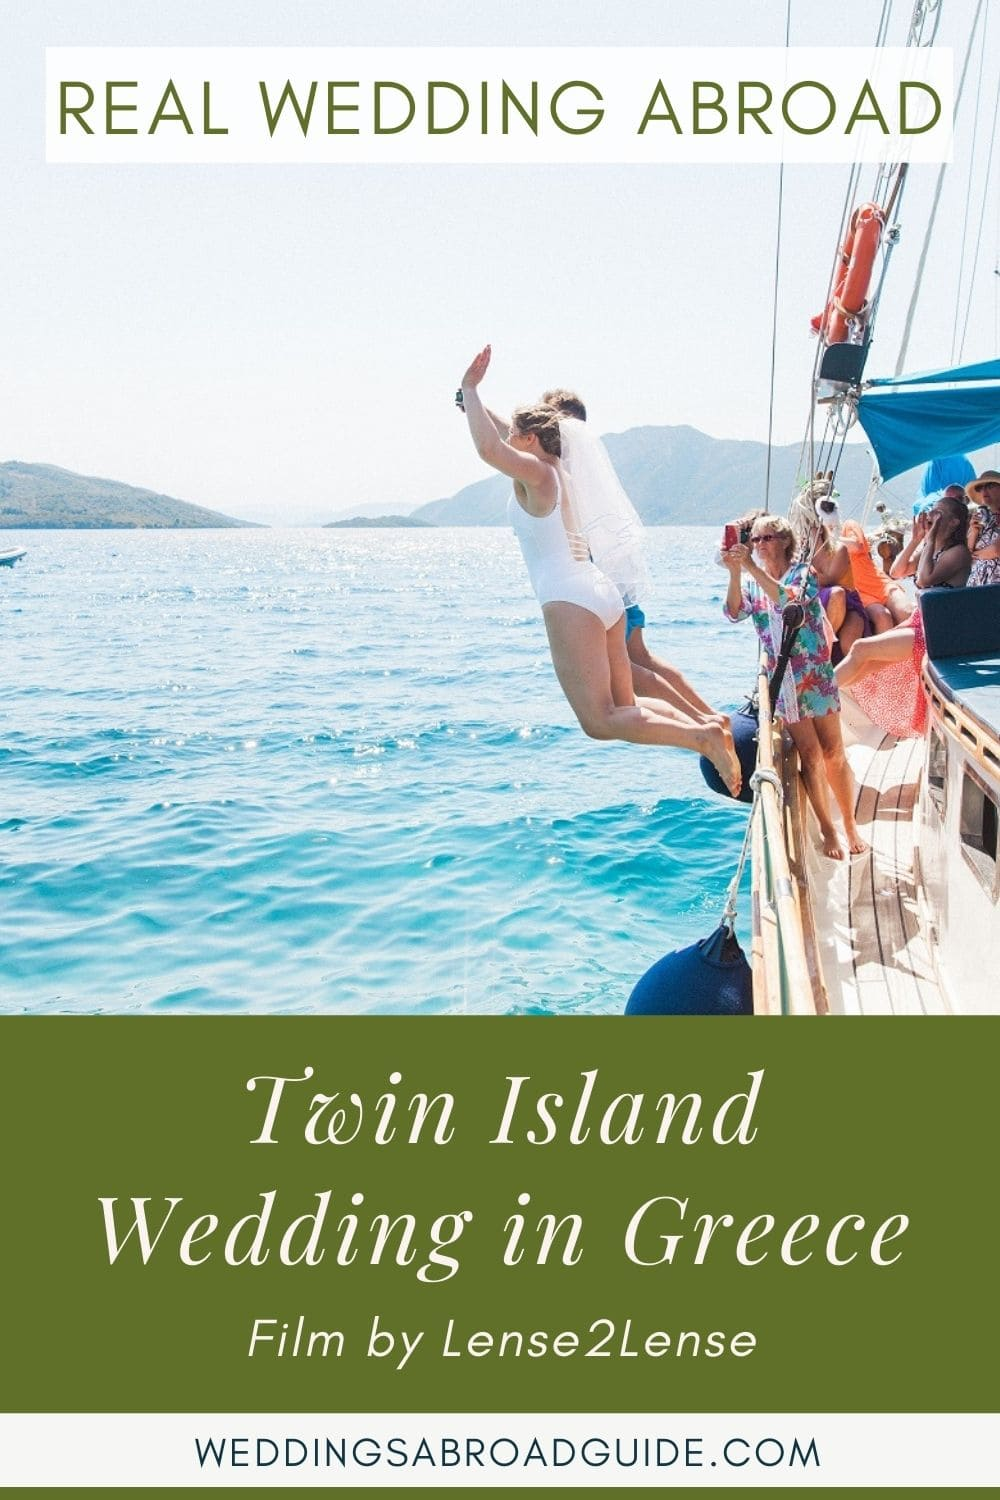 Intimate Real Wedding Abroad in Greece   Planned by Lefkas Weddings   Maxeen Kim Photography   Lense2Lense Videography